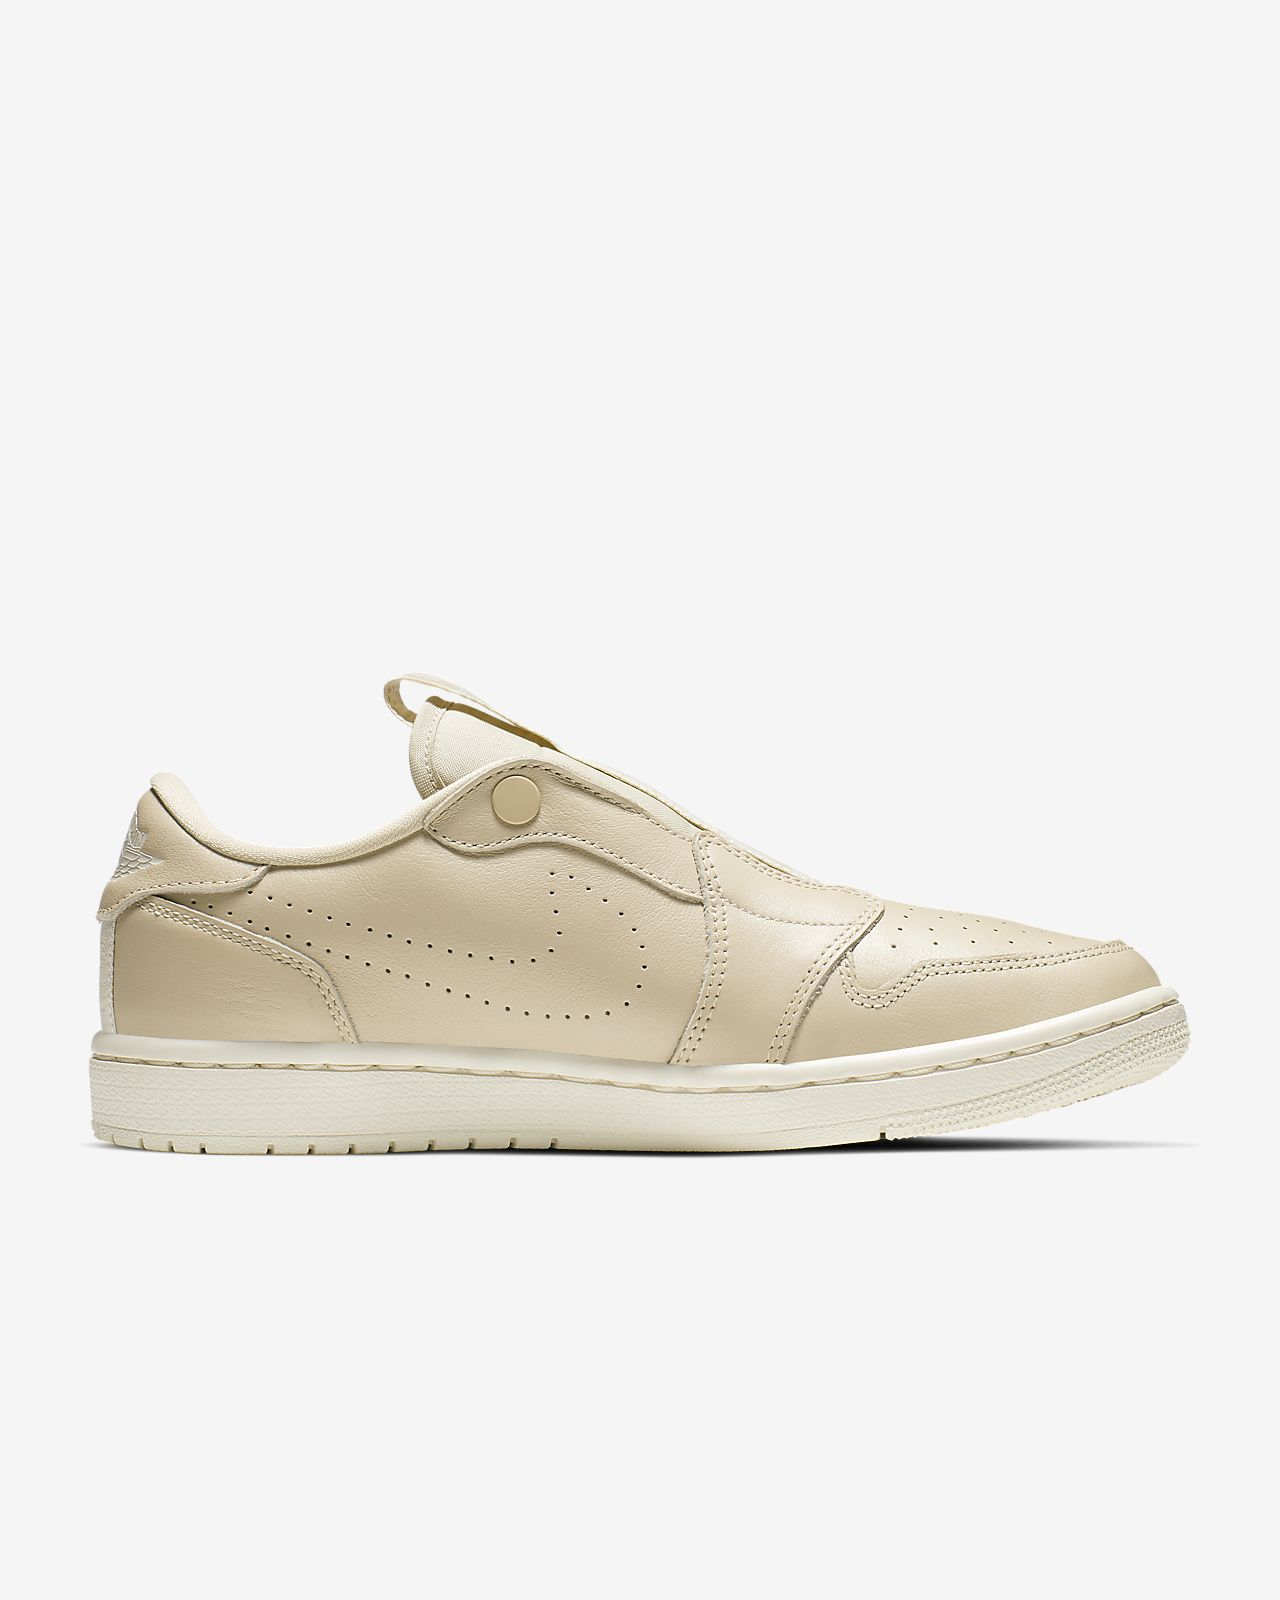 933a04144af8 Air Jordan 1 Retro Low Slip Women s Shoe. Nike.com GB